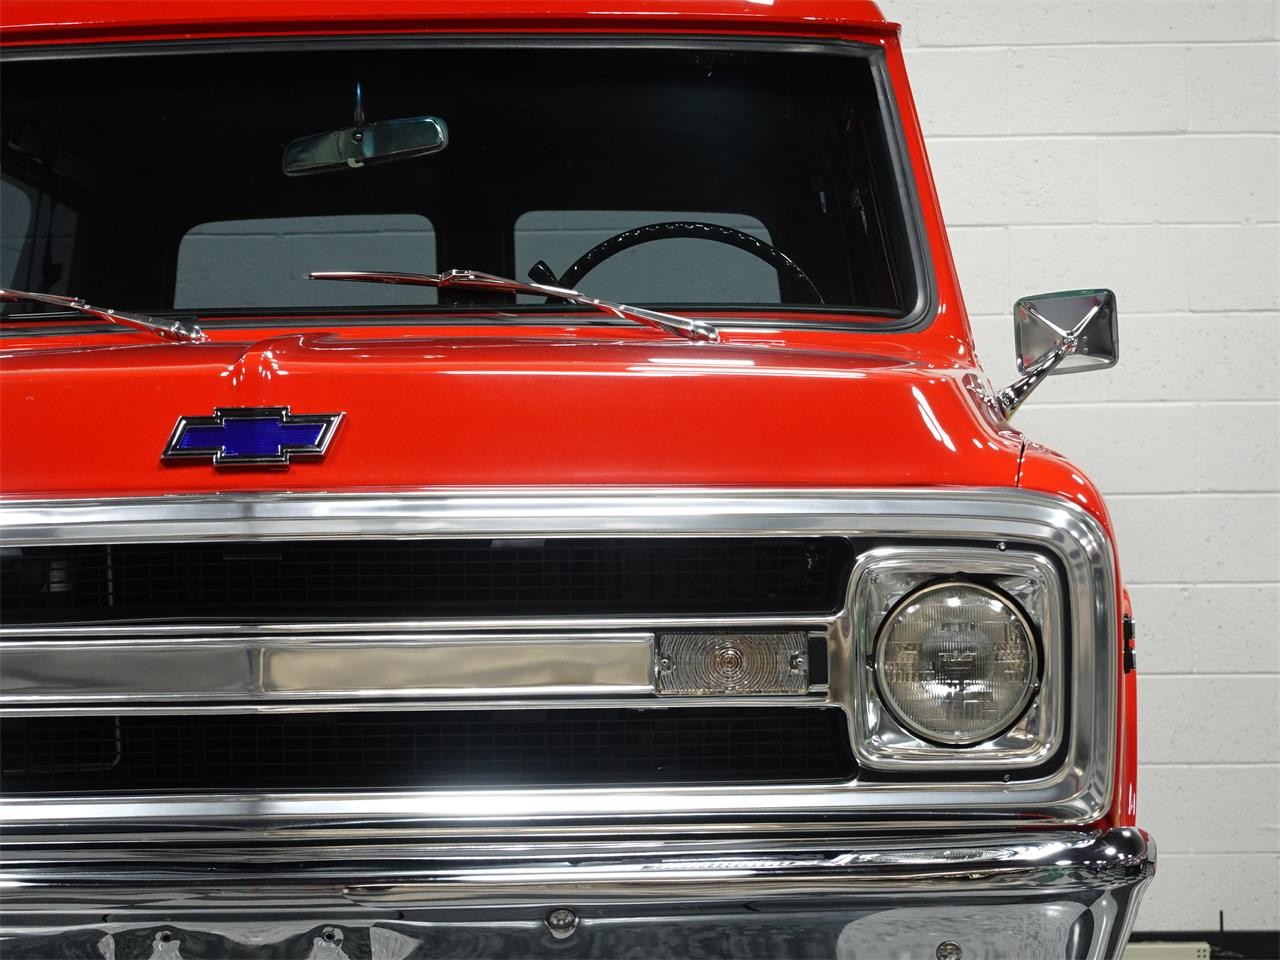 1970 Chevrolet Suburban (CC-1382970) for sale in Pittsburgh, Pennsylvania